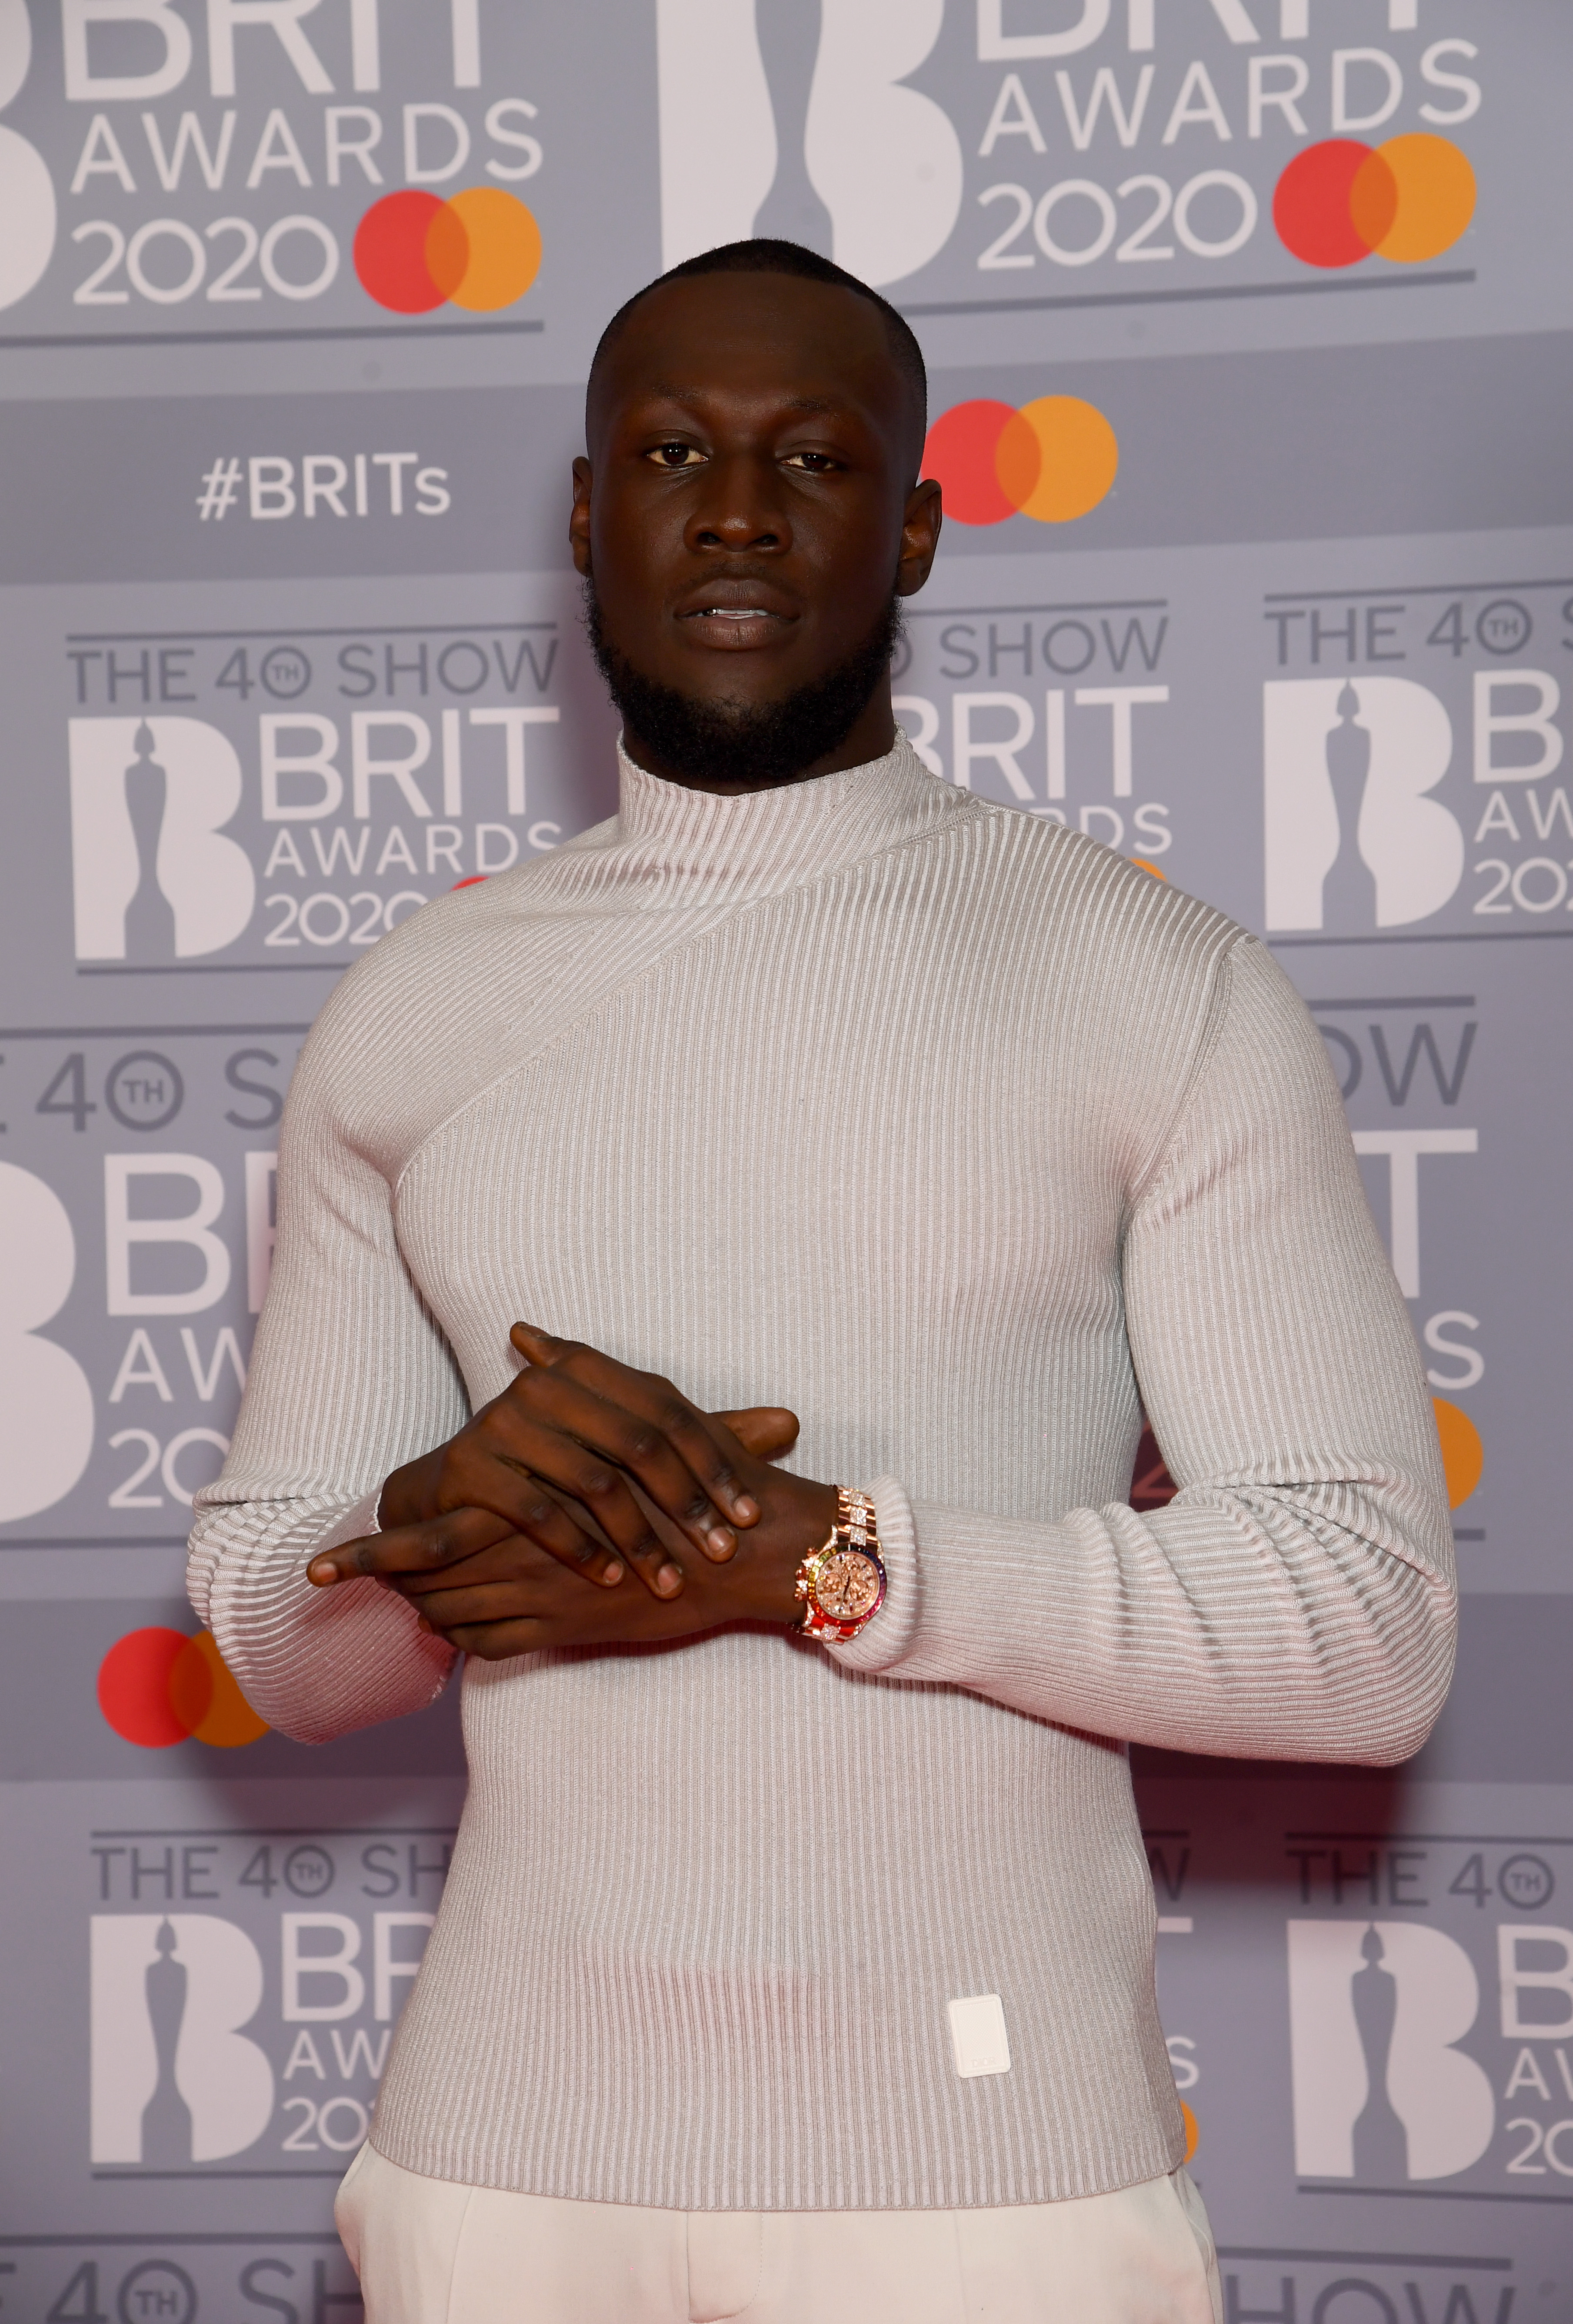 Stormzy attends The BRIT Awards 2020 at The O2 Arena on February 18, 2020 in London, England. (Photo by Dave J Hogan/Getty Images)